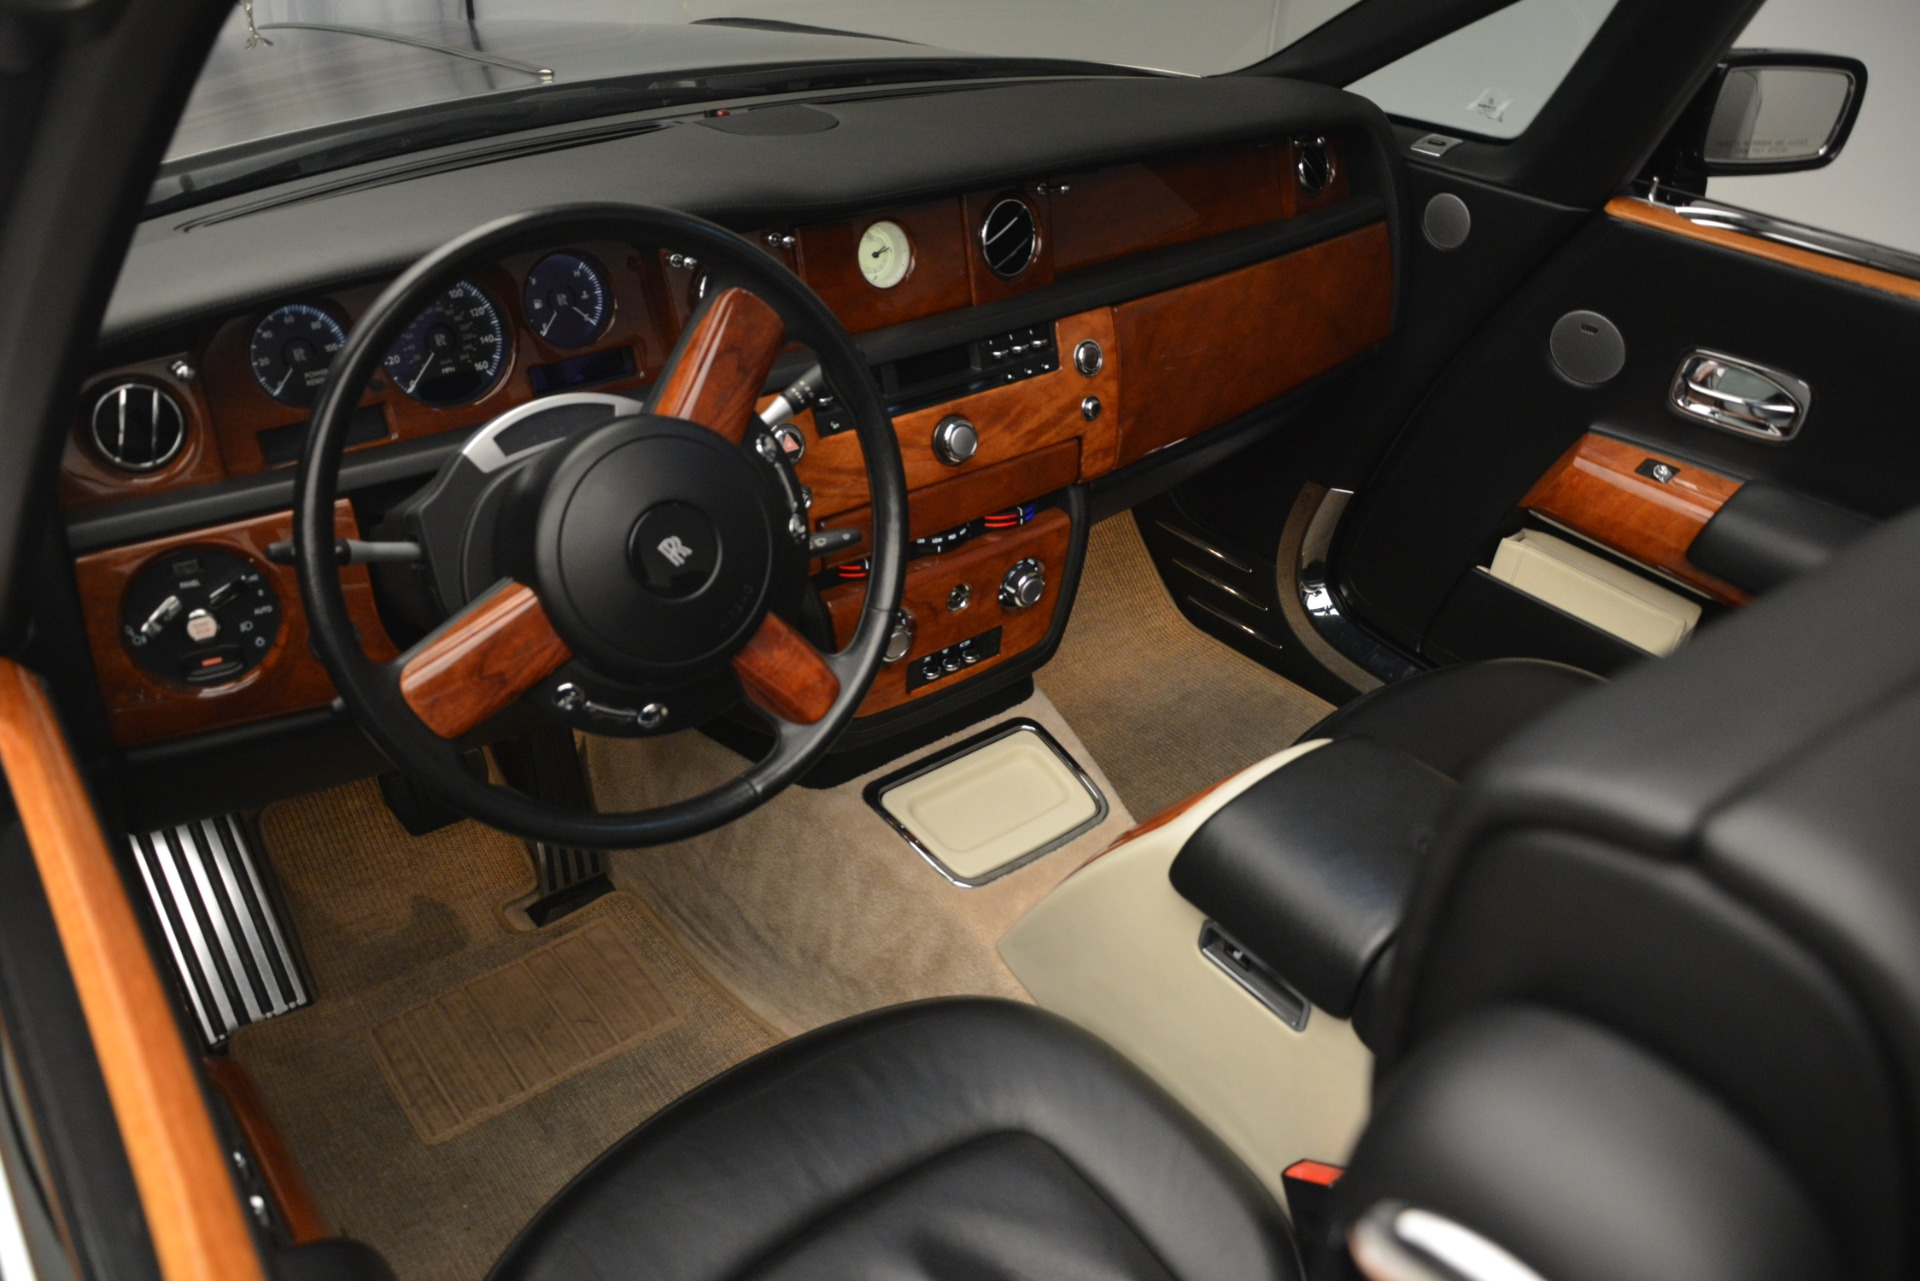 Used 2008 Rolls-Royce Phantom Drophead Coupe  For Sale In Greenwich, CT 3000_p22